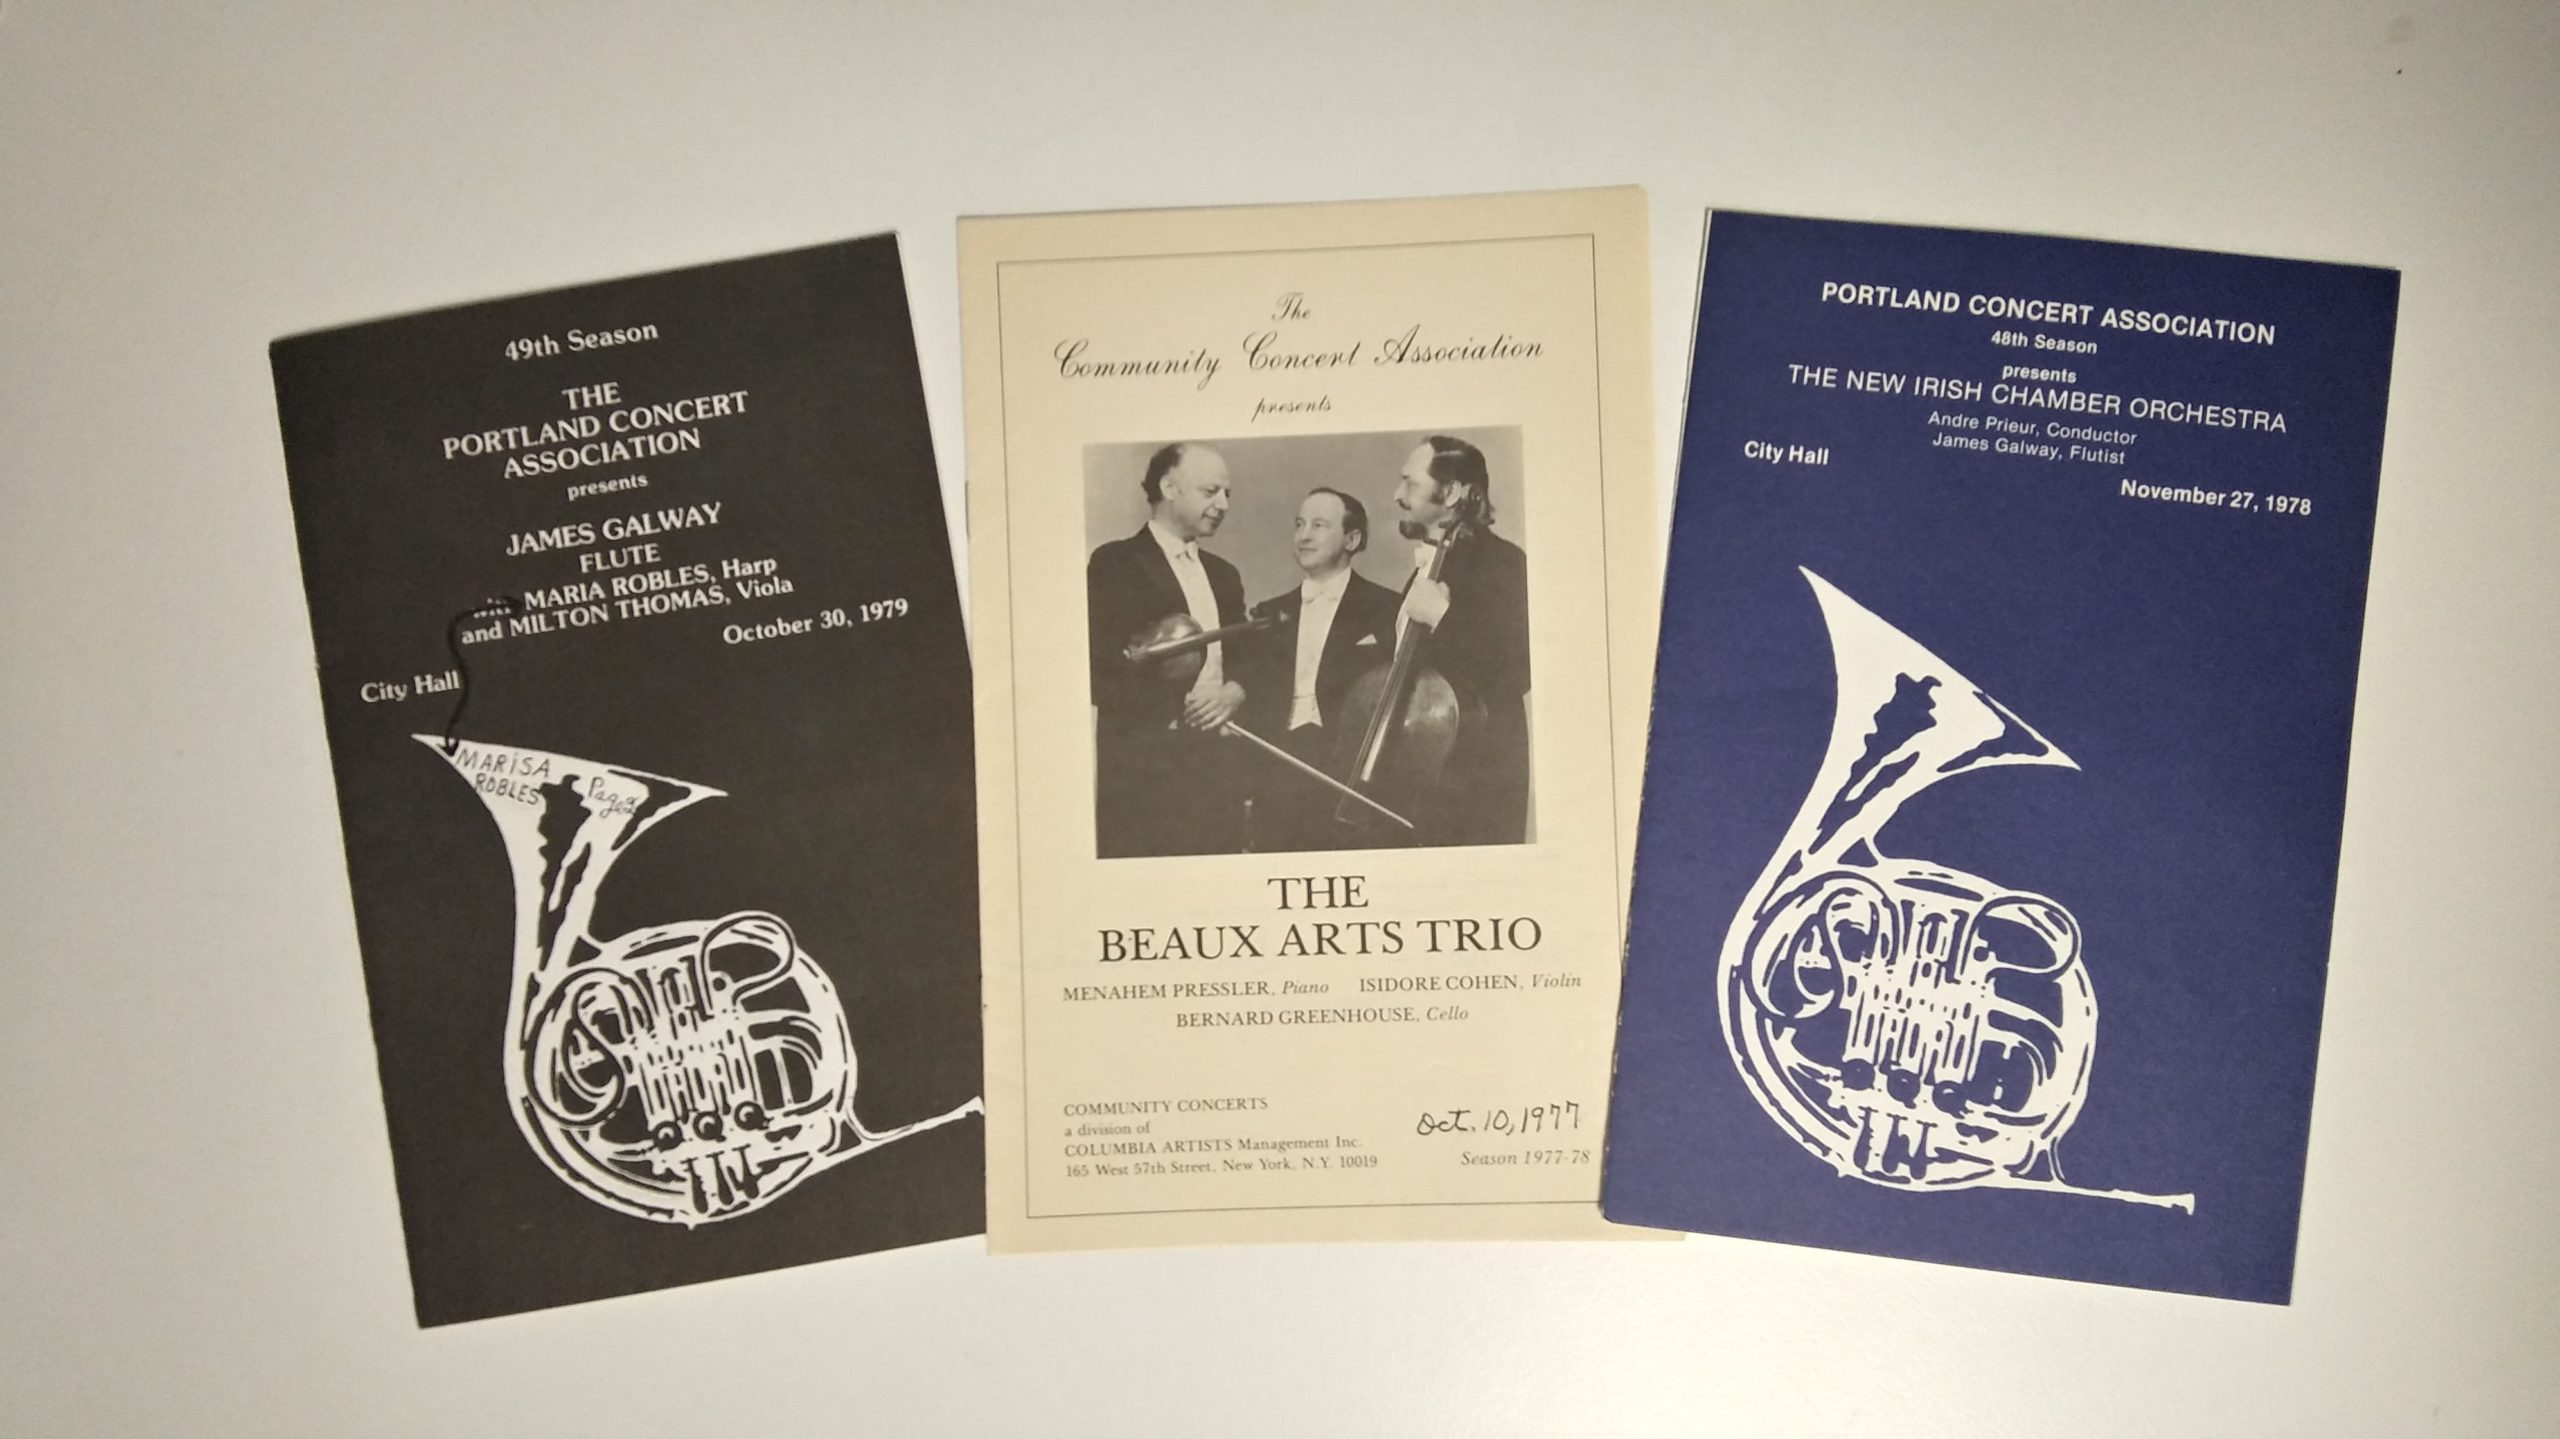 Image of 3 Portland Concert Association program books from the 1970s